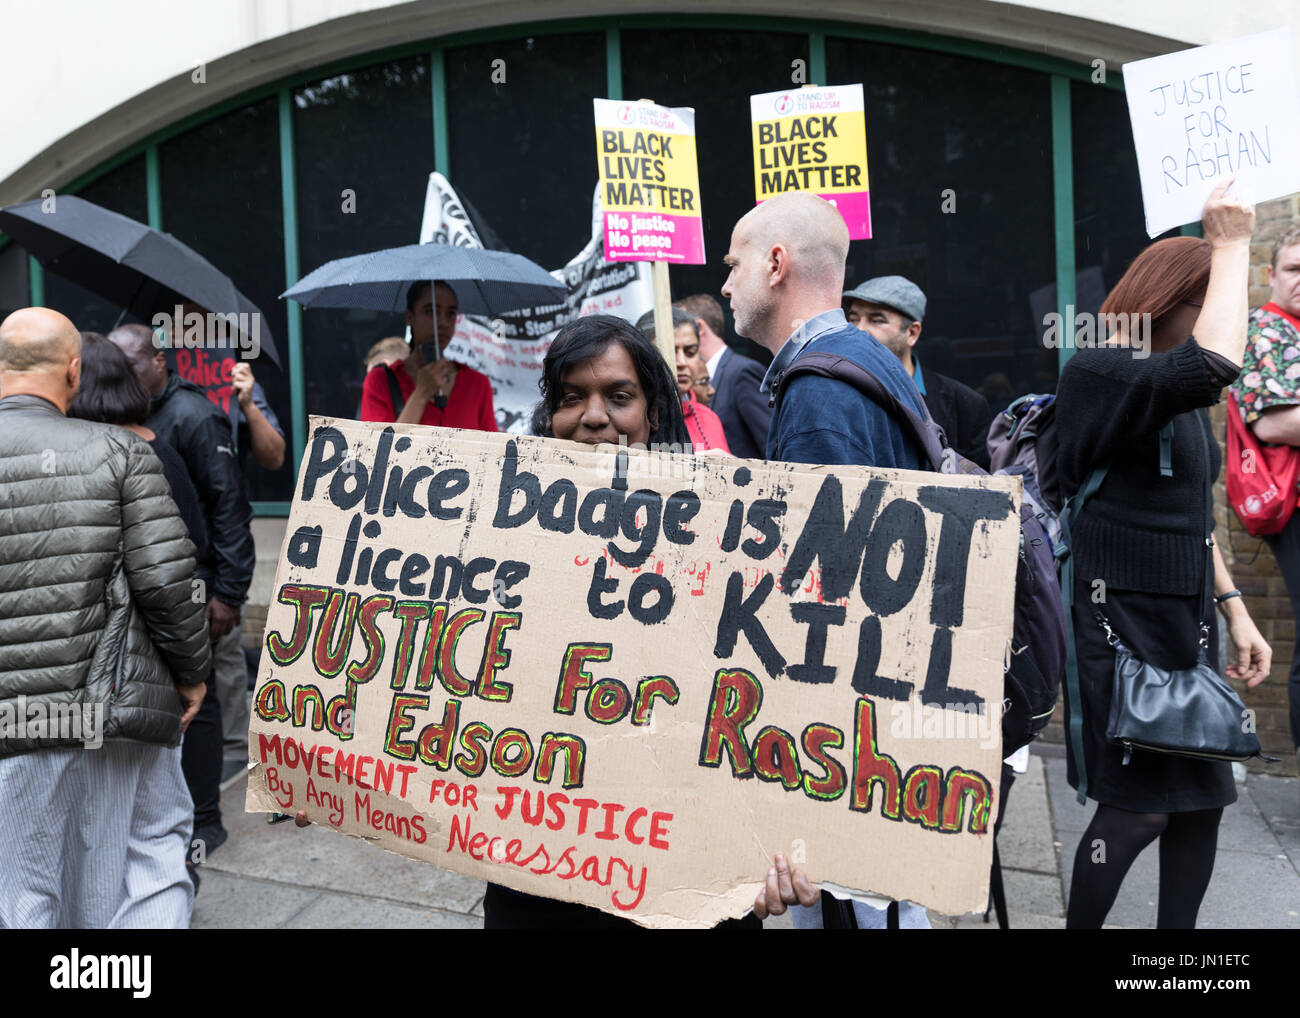 London, UK. 29th July, 2017. Vigil and protest for Rashan Charles outside Stoke Newington Police Station. The fathers of Rashan Charles and Edson da Costs and MP Diane Abbott attended. Credit Carol Moir/Alamy Live News. - Stock Image